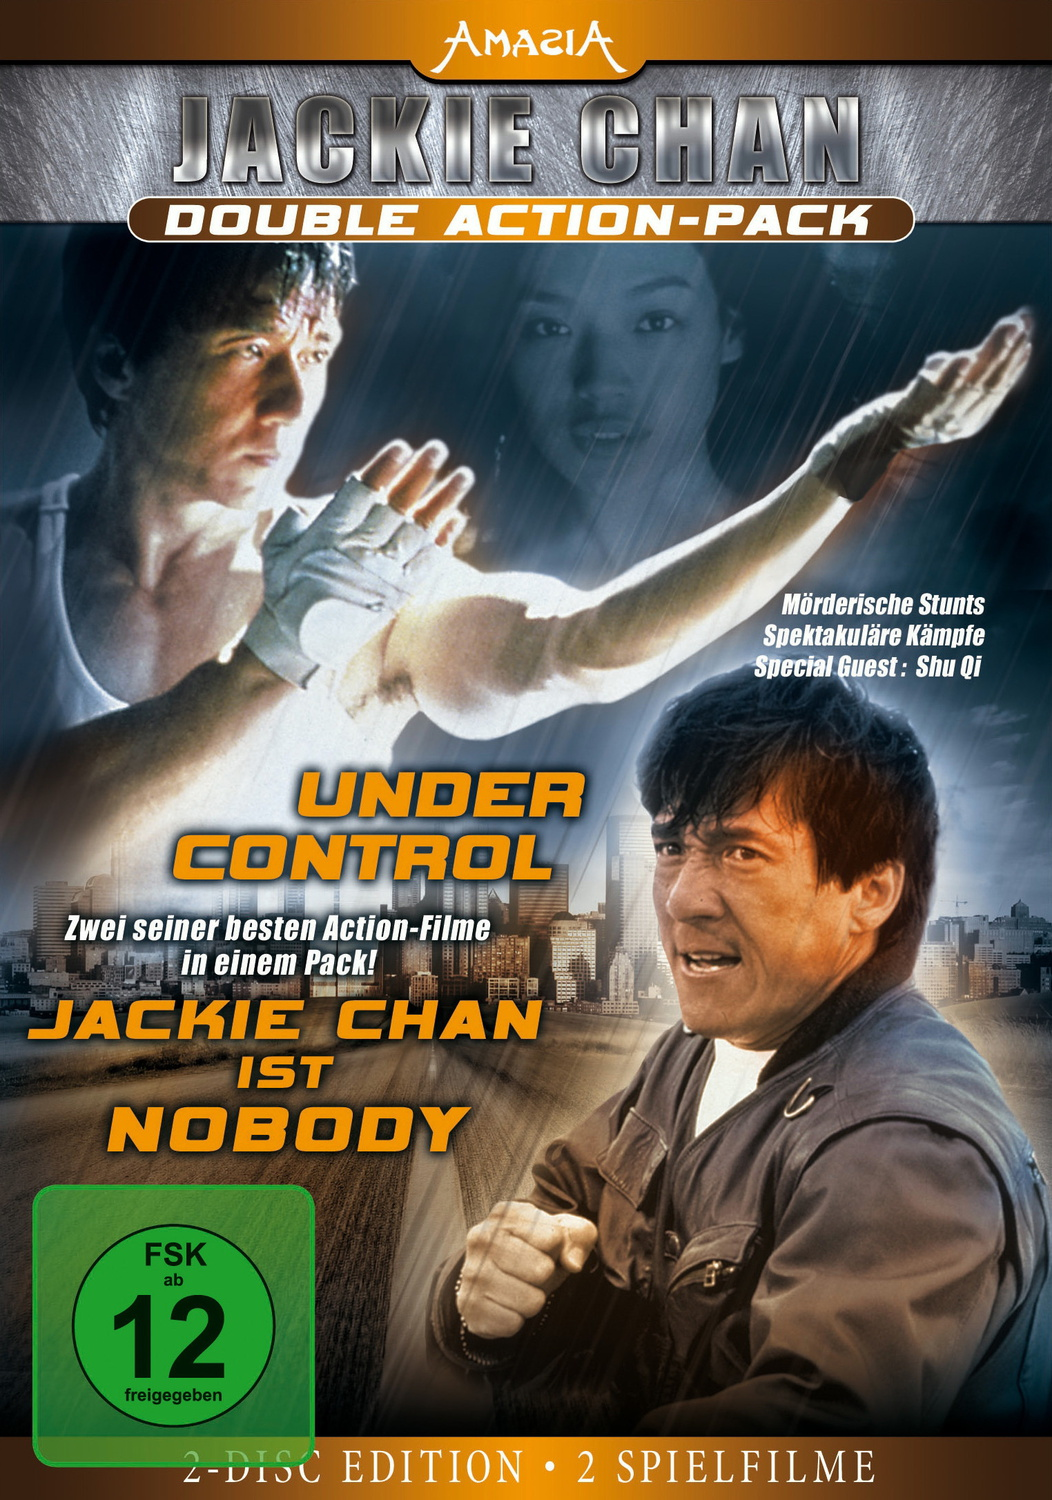 Jackie Chan ist Nobody + Under Control